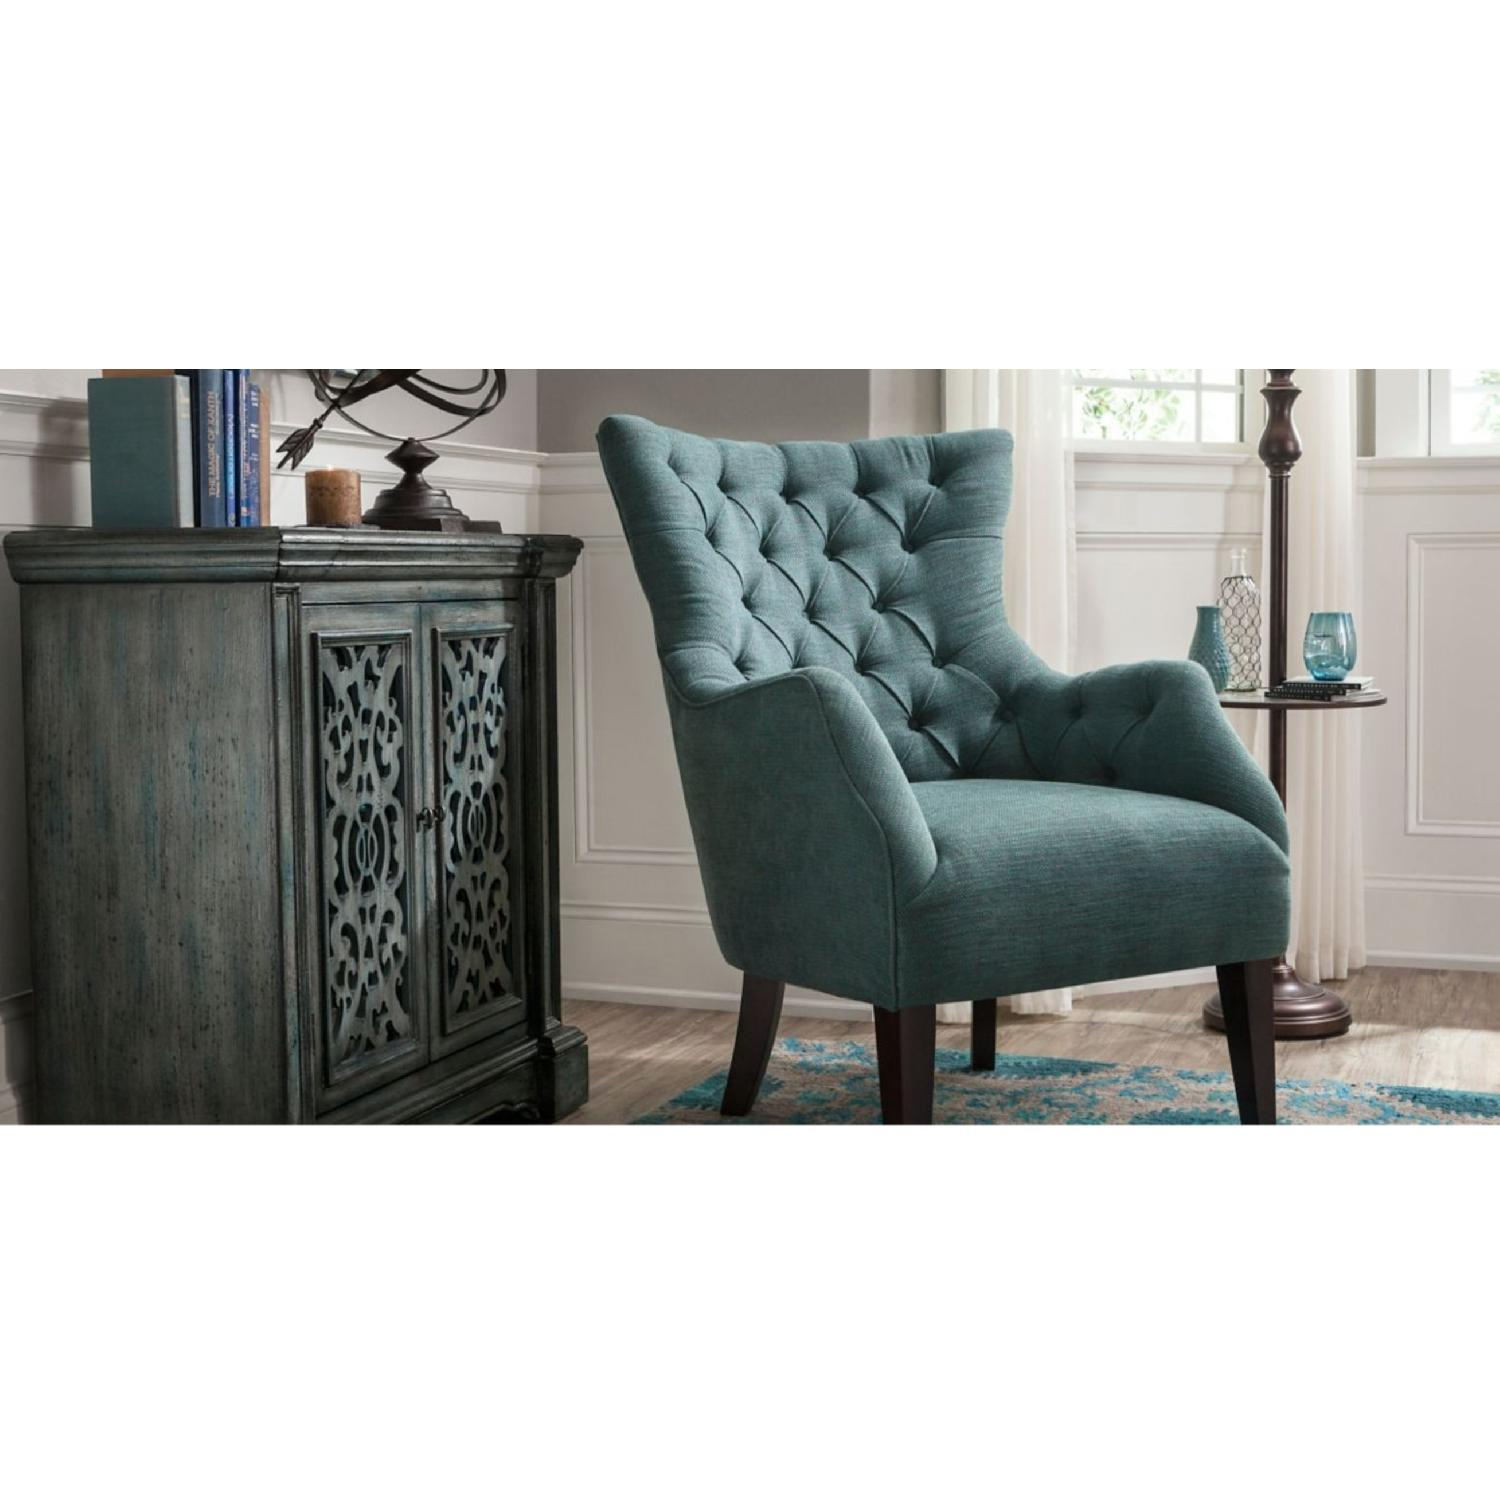 Raymour & Flanigan Angora Chenille Accent Chair-0